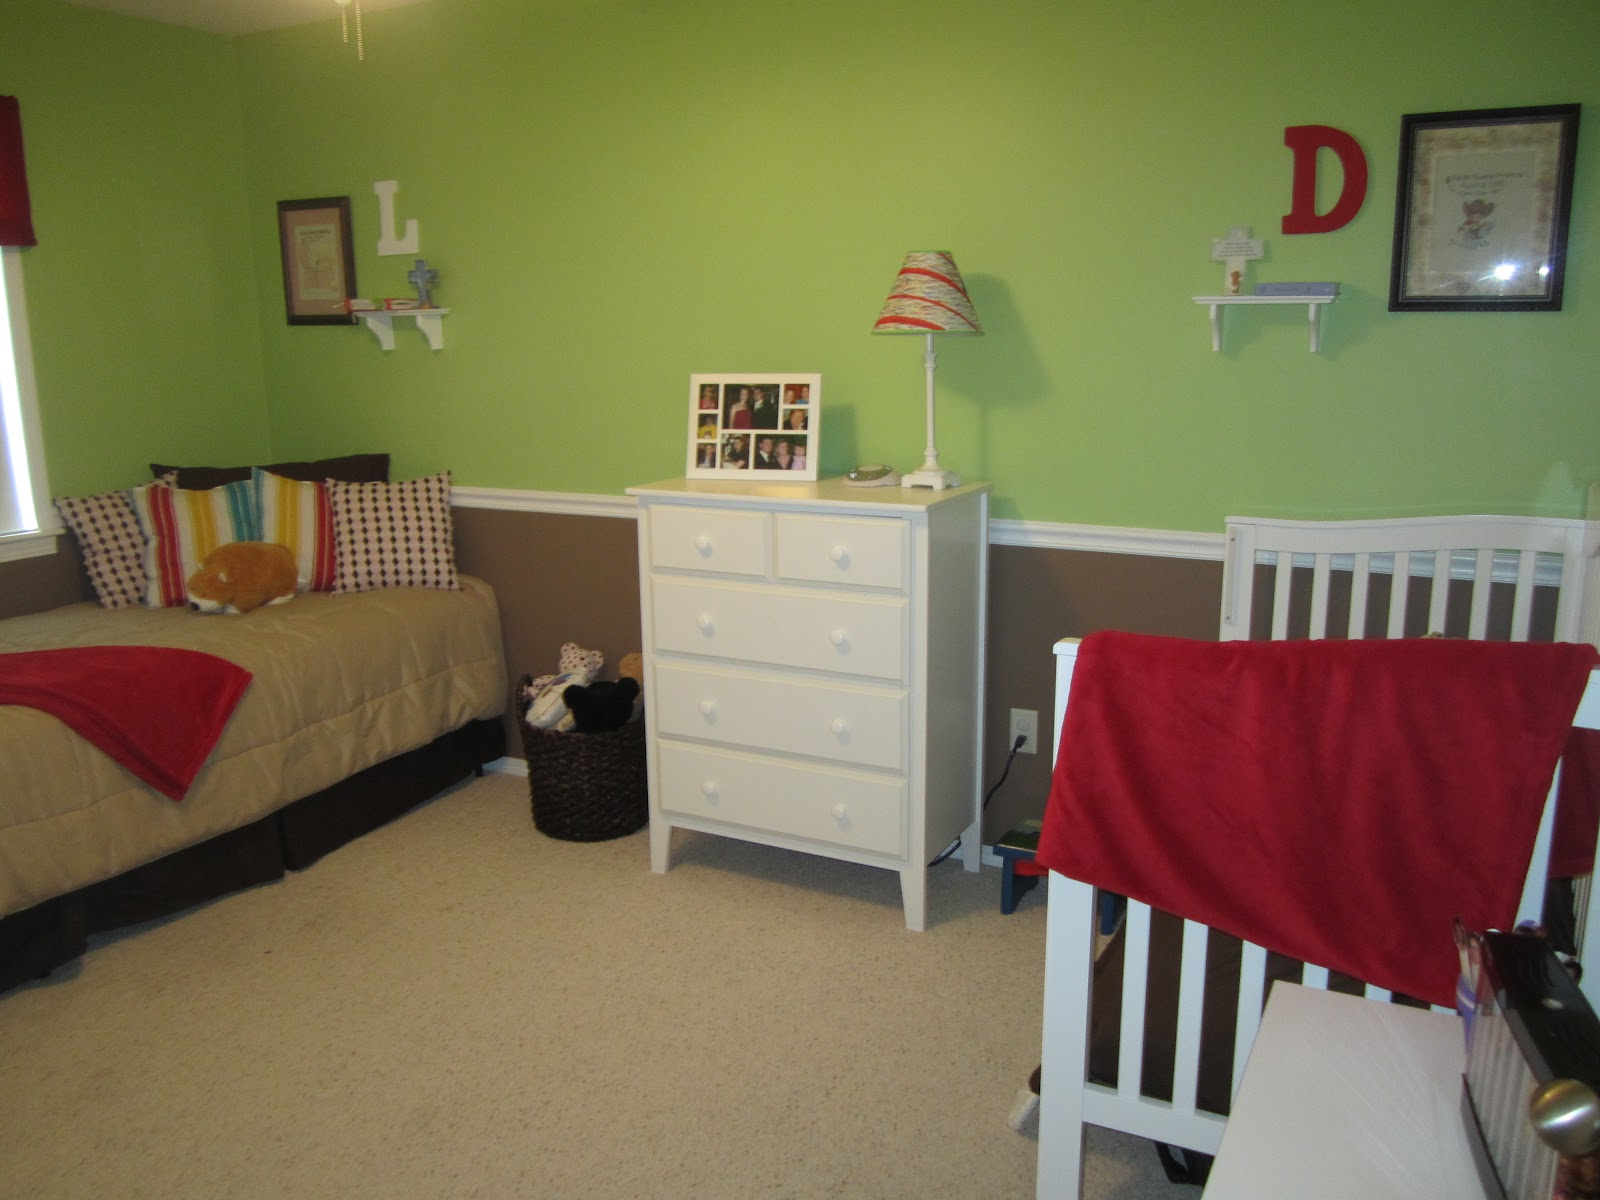 Raising little disciples boy and girl bedroom for Bedroom ideas 13 year old boy